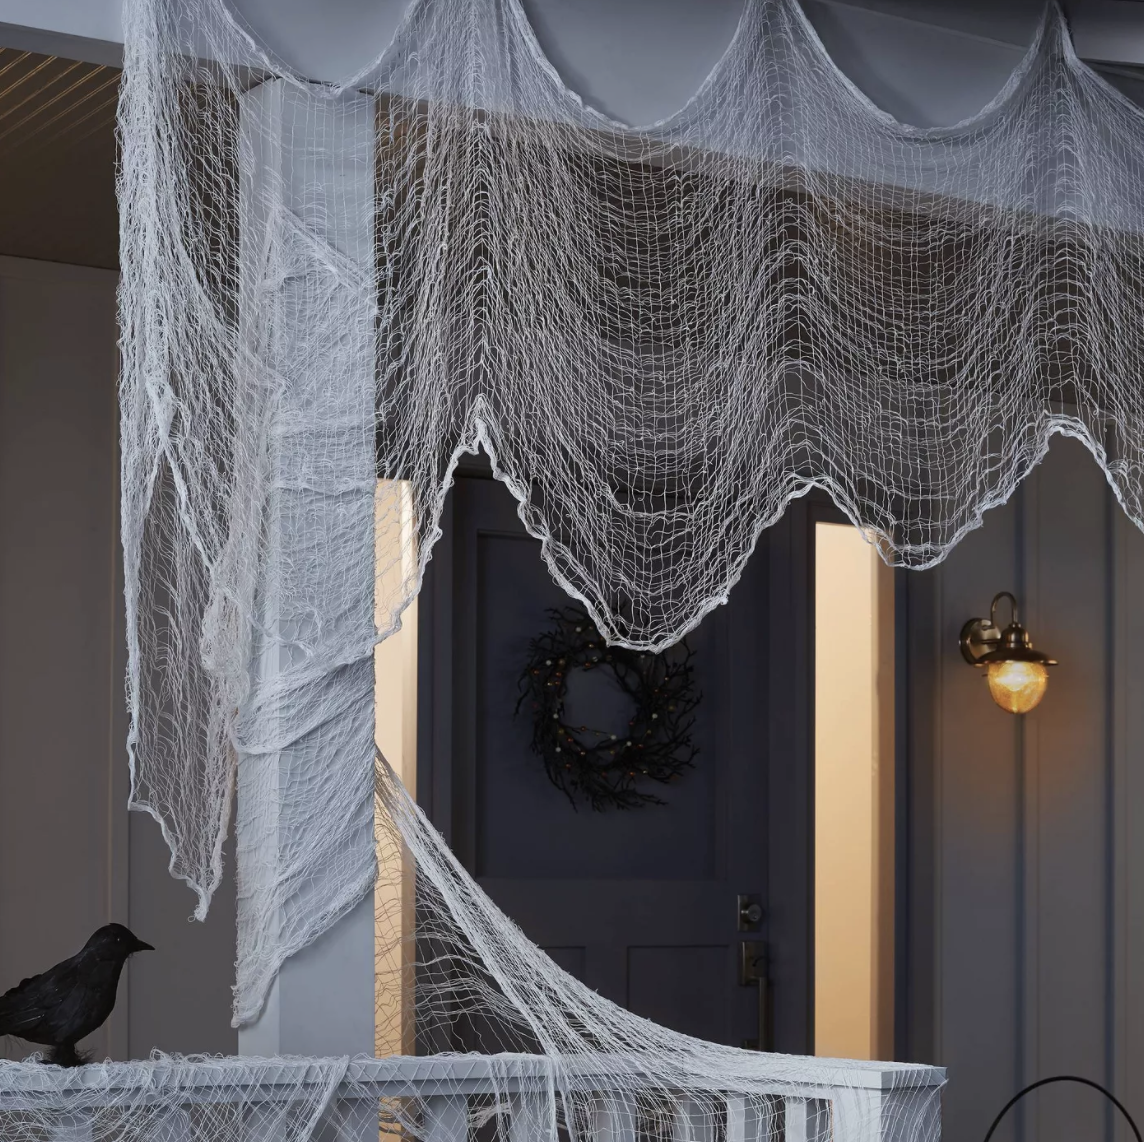 The white net fabric draped around a porch to look like webs